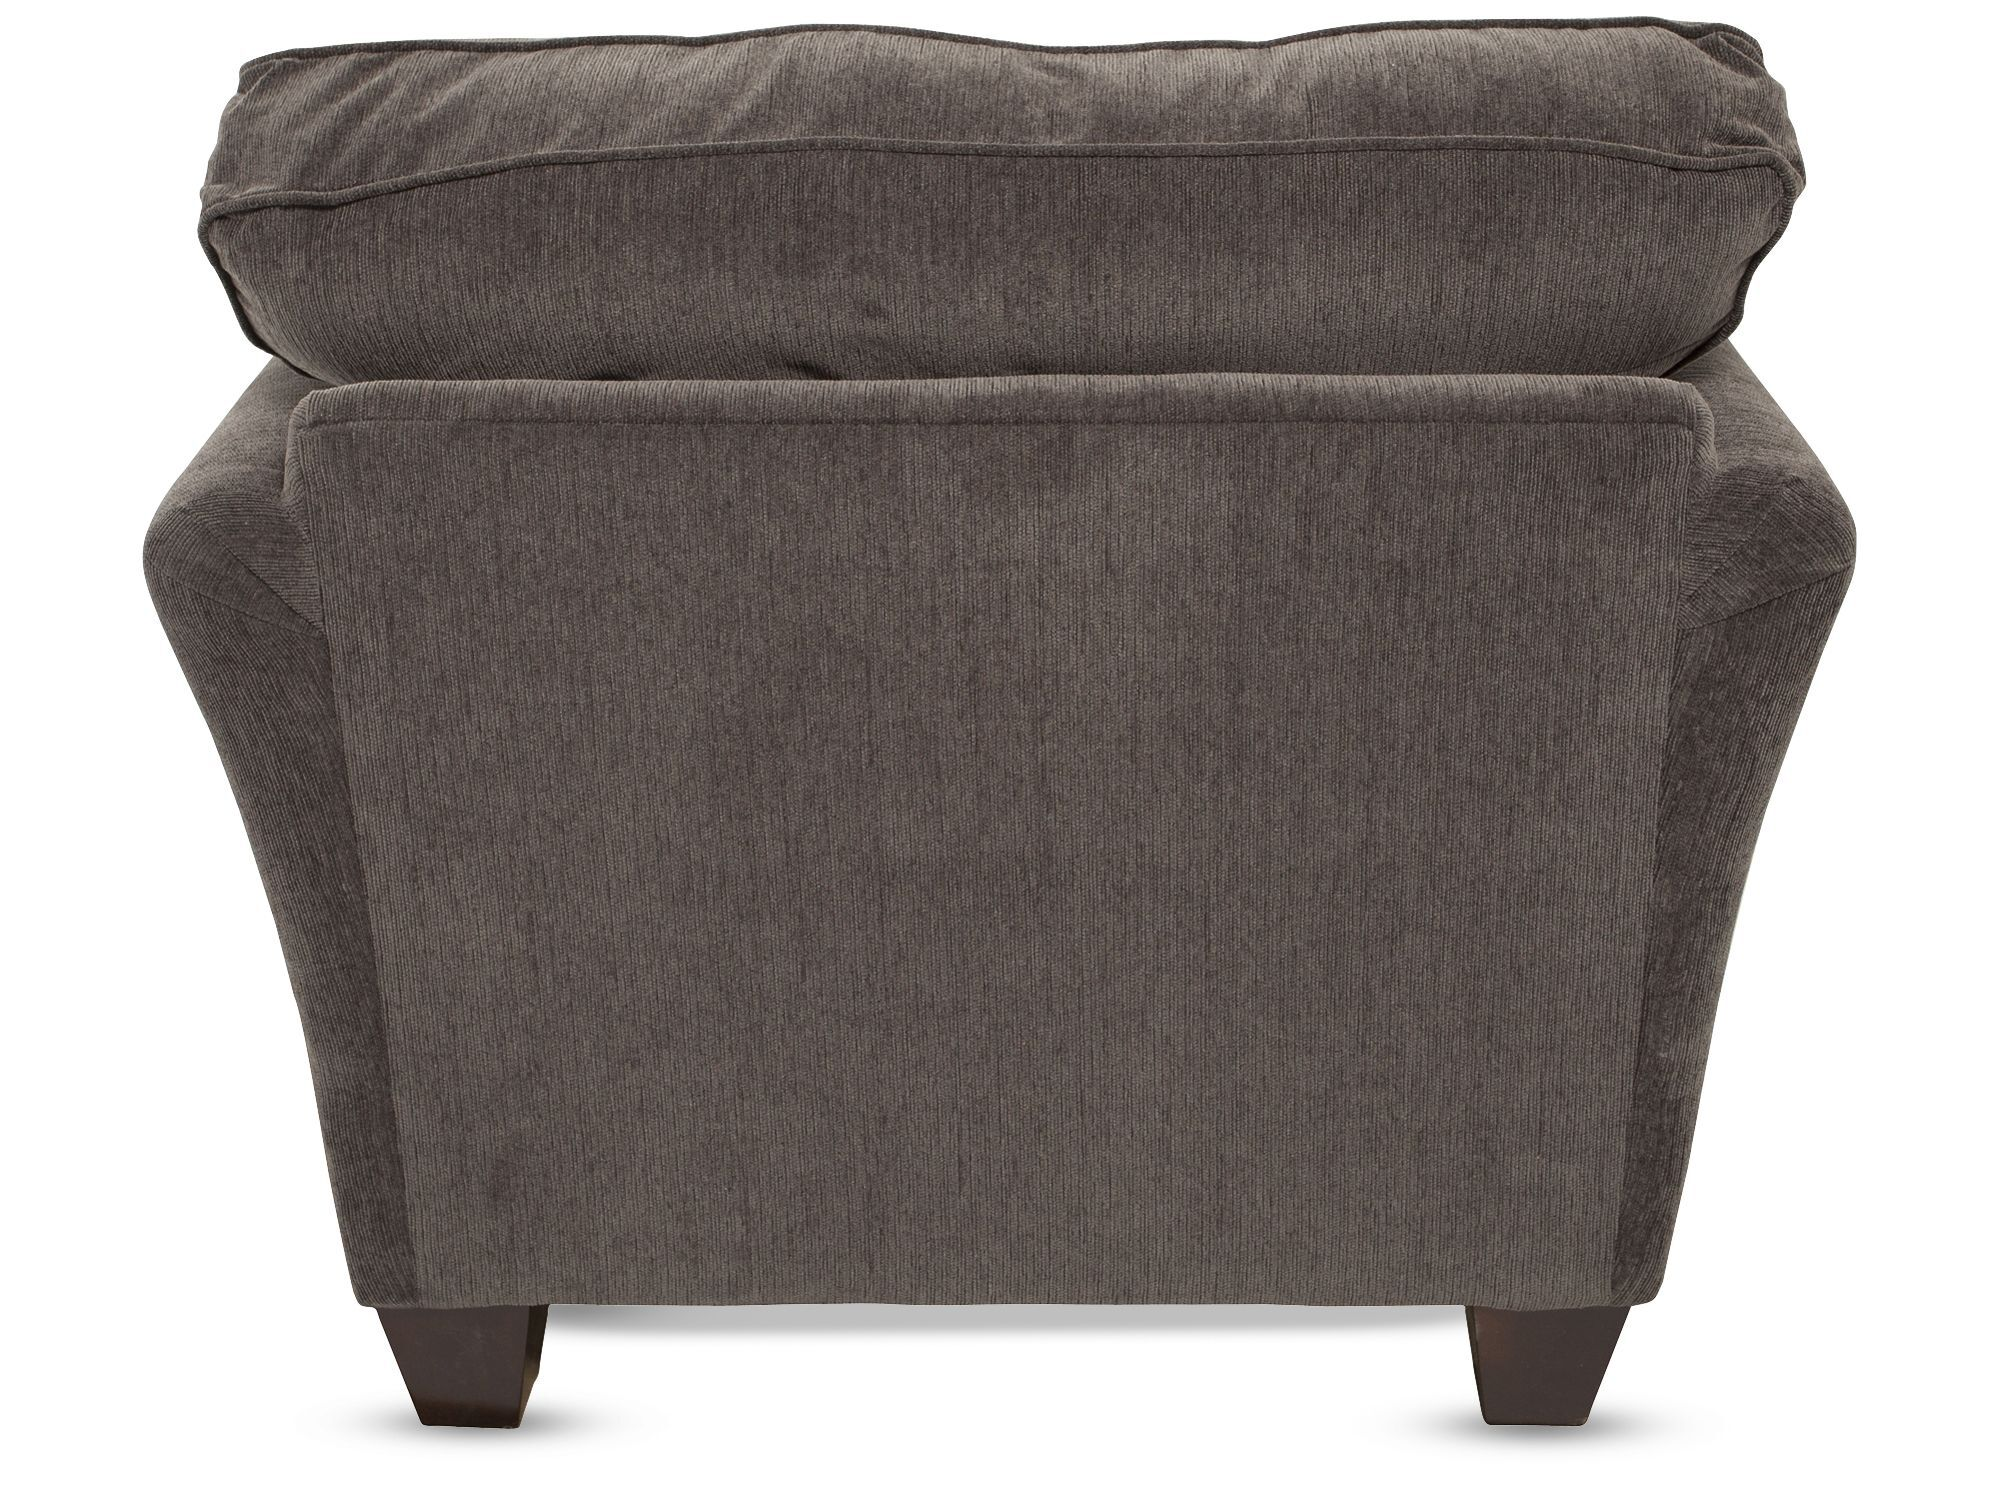 Broyhill Brown Corduroy Sofa Broyhill Maddie Sofa 6517 3 Year Of Clean Water